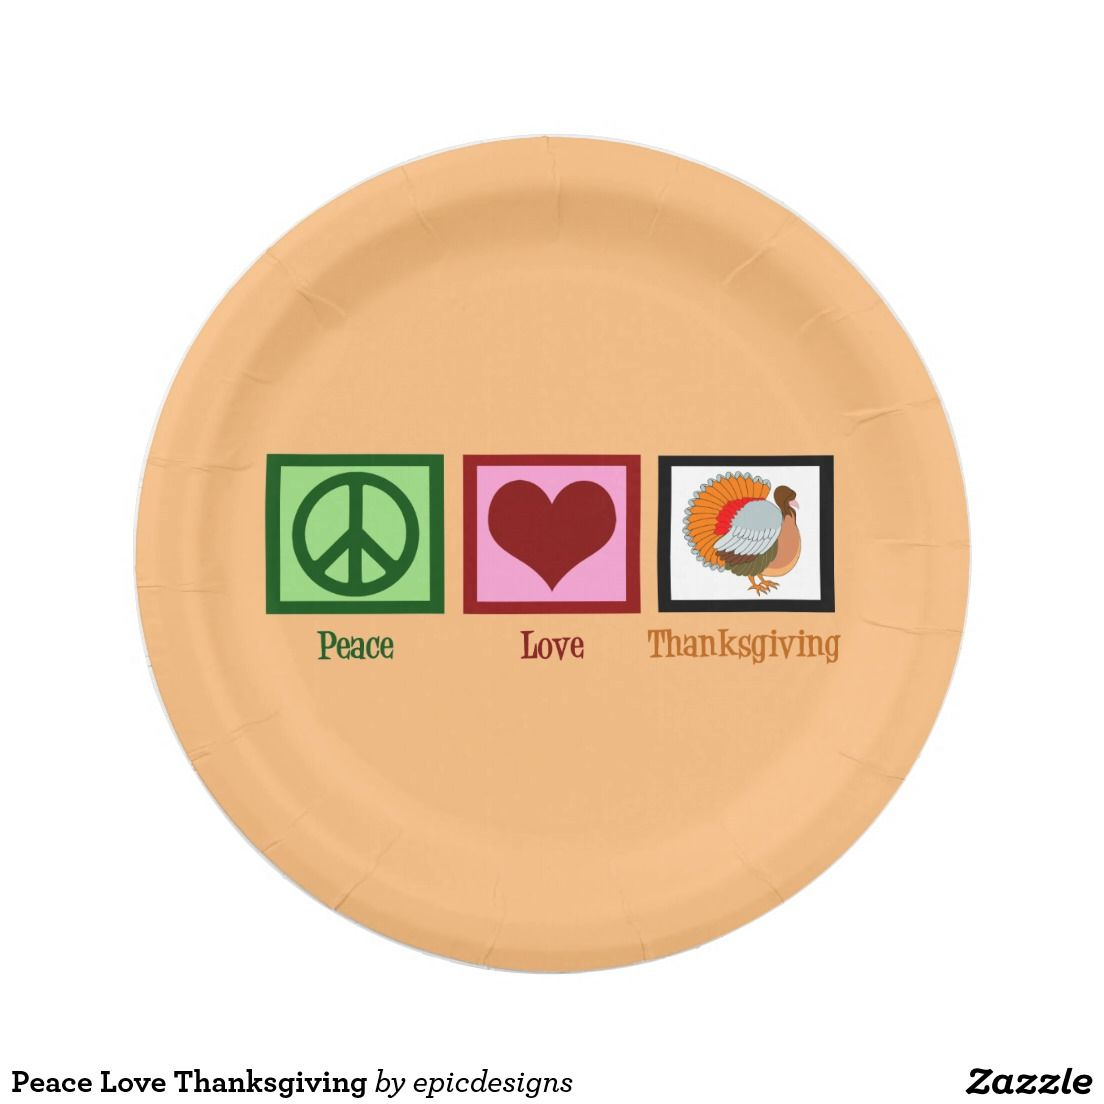 Peace Love Thanksgiving 7 Inch Paper Plates in orange. Pretty holiday plates with a peace sign, heart, and a turkey with orange, yellow, and red feathers for a Thanksgiving dinner party with family and friends.